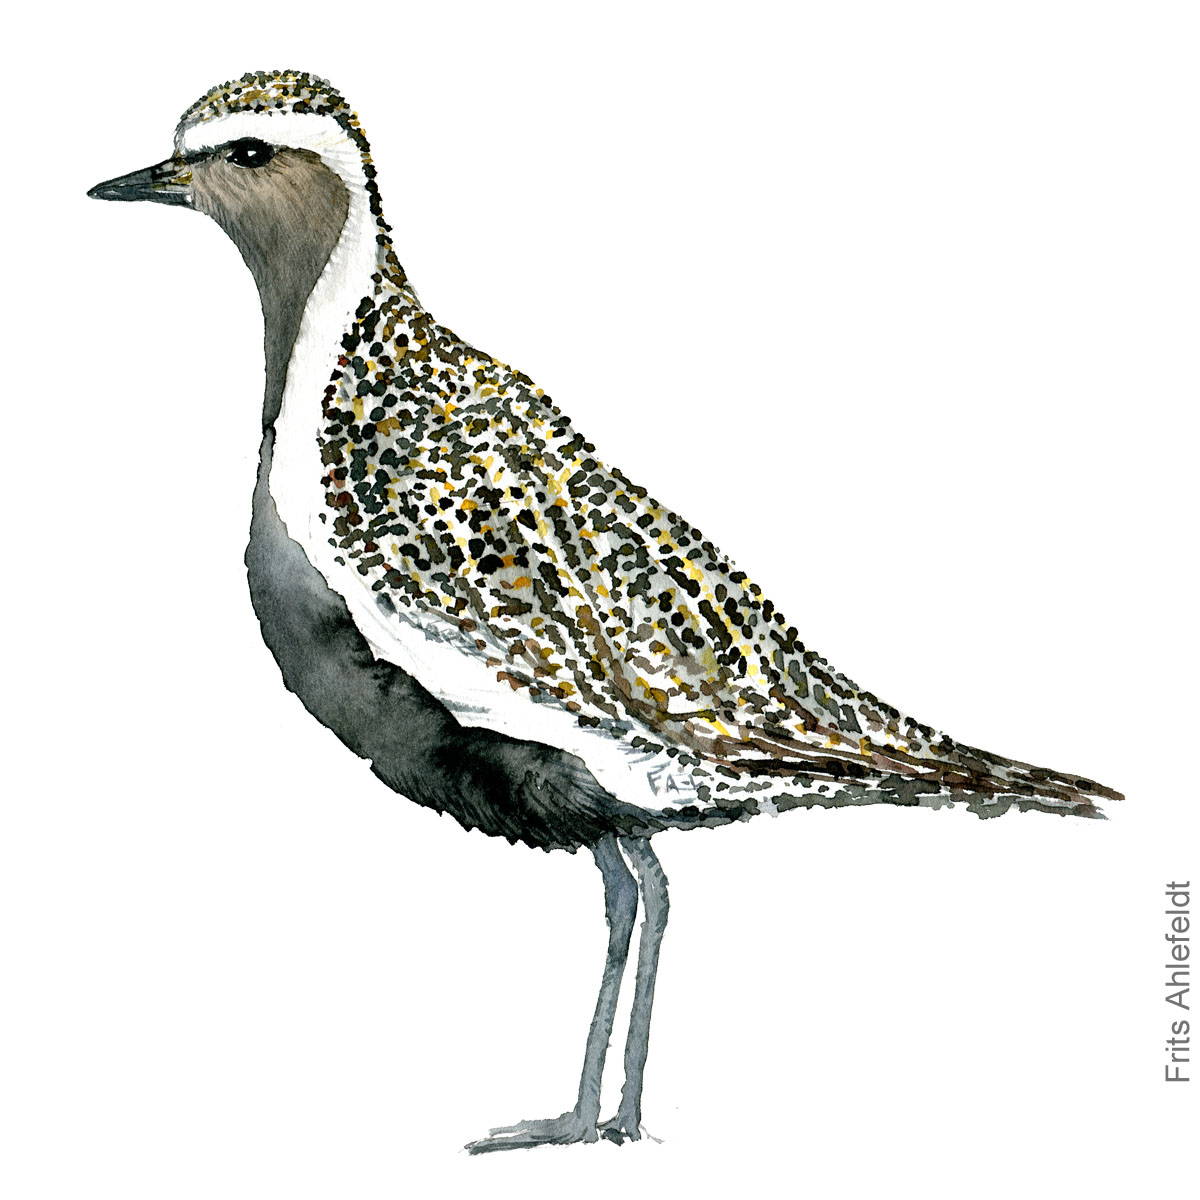 European Golden plover bird watercolor illustration. Hjejle fugl akvarel